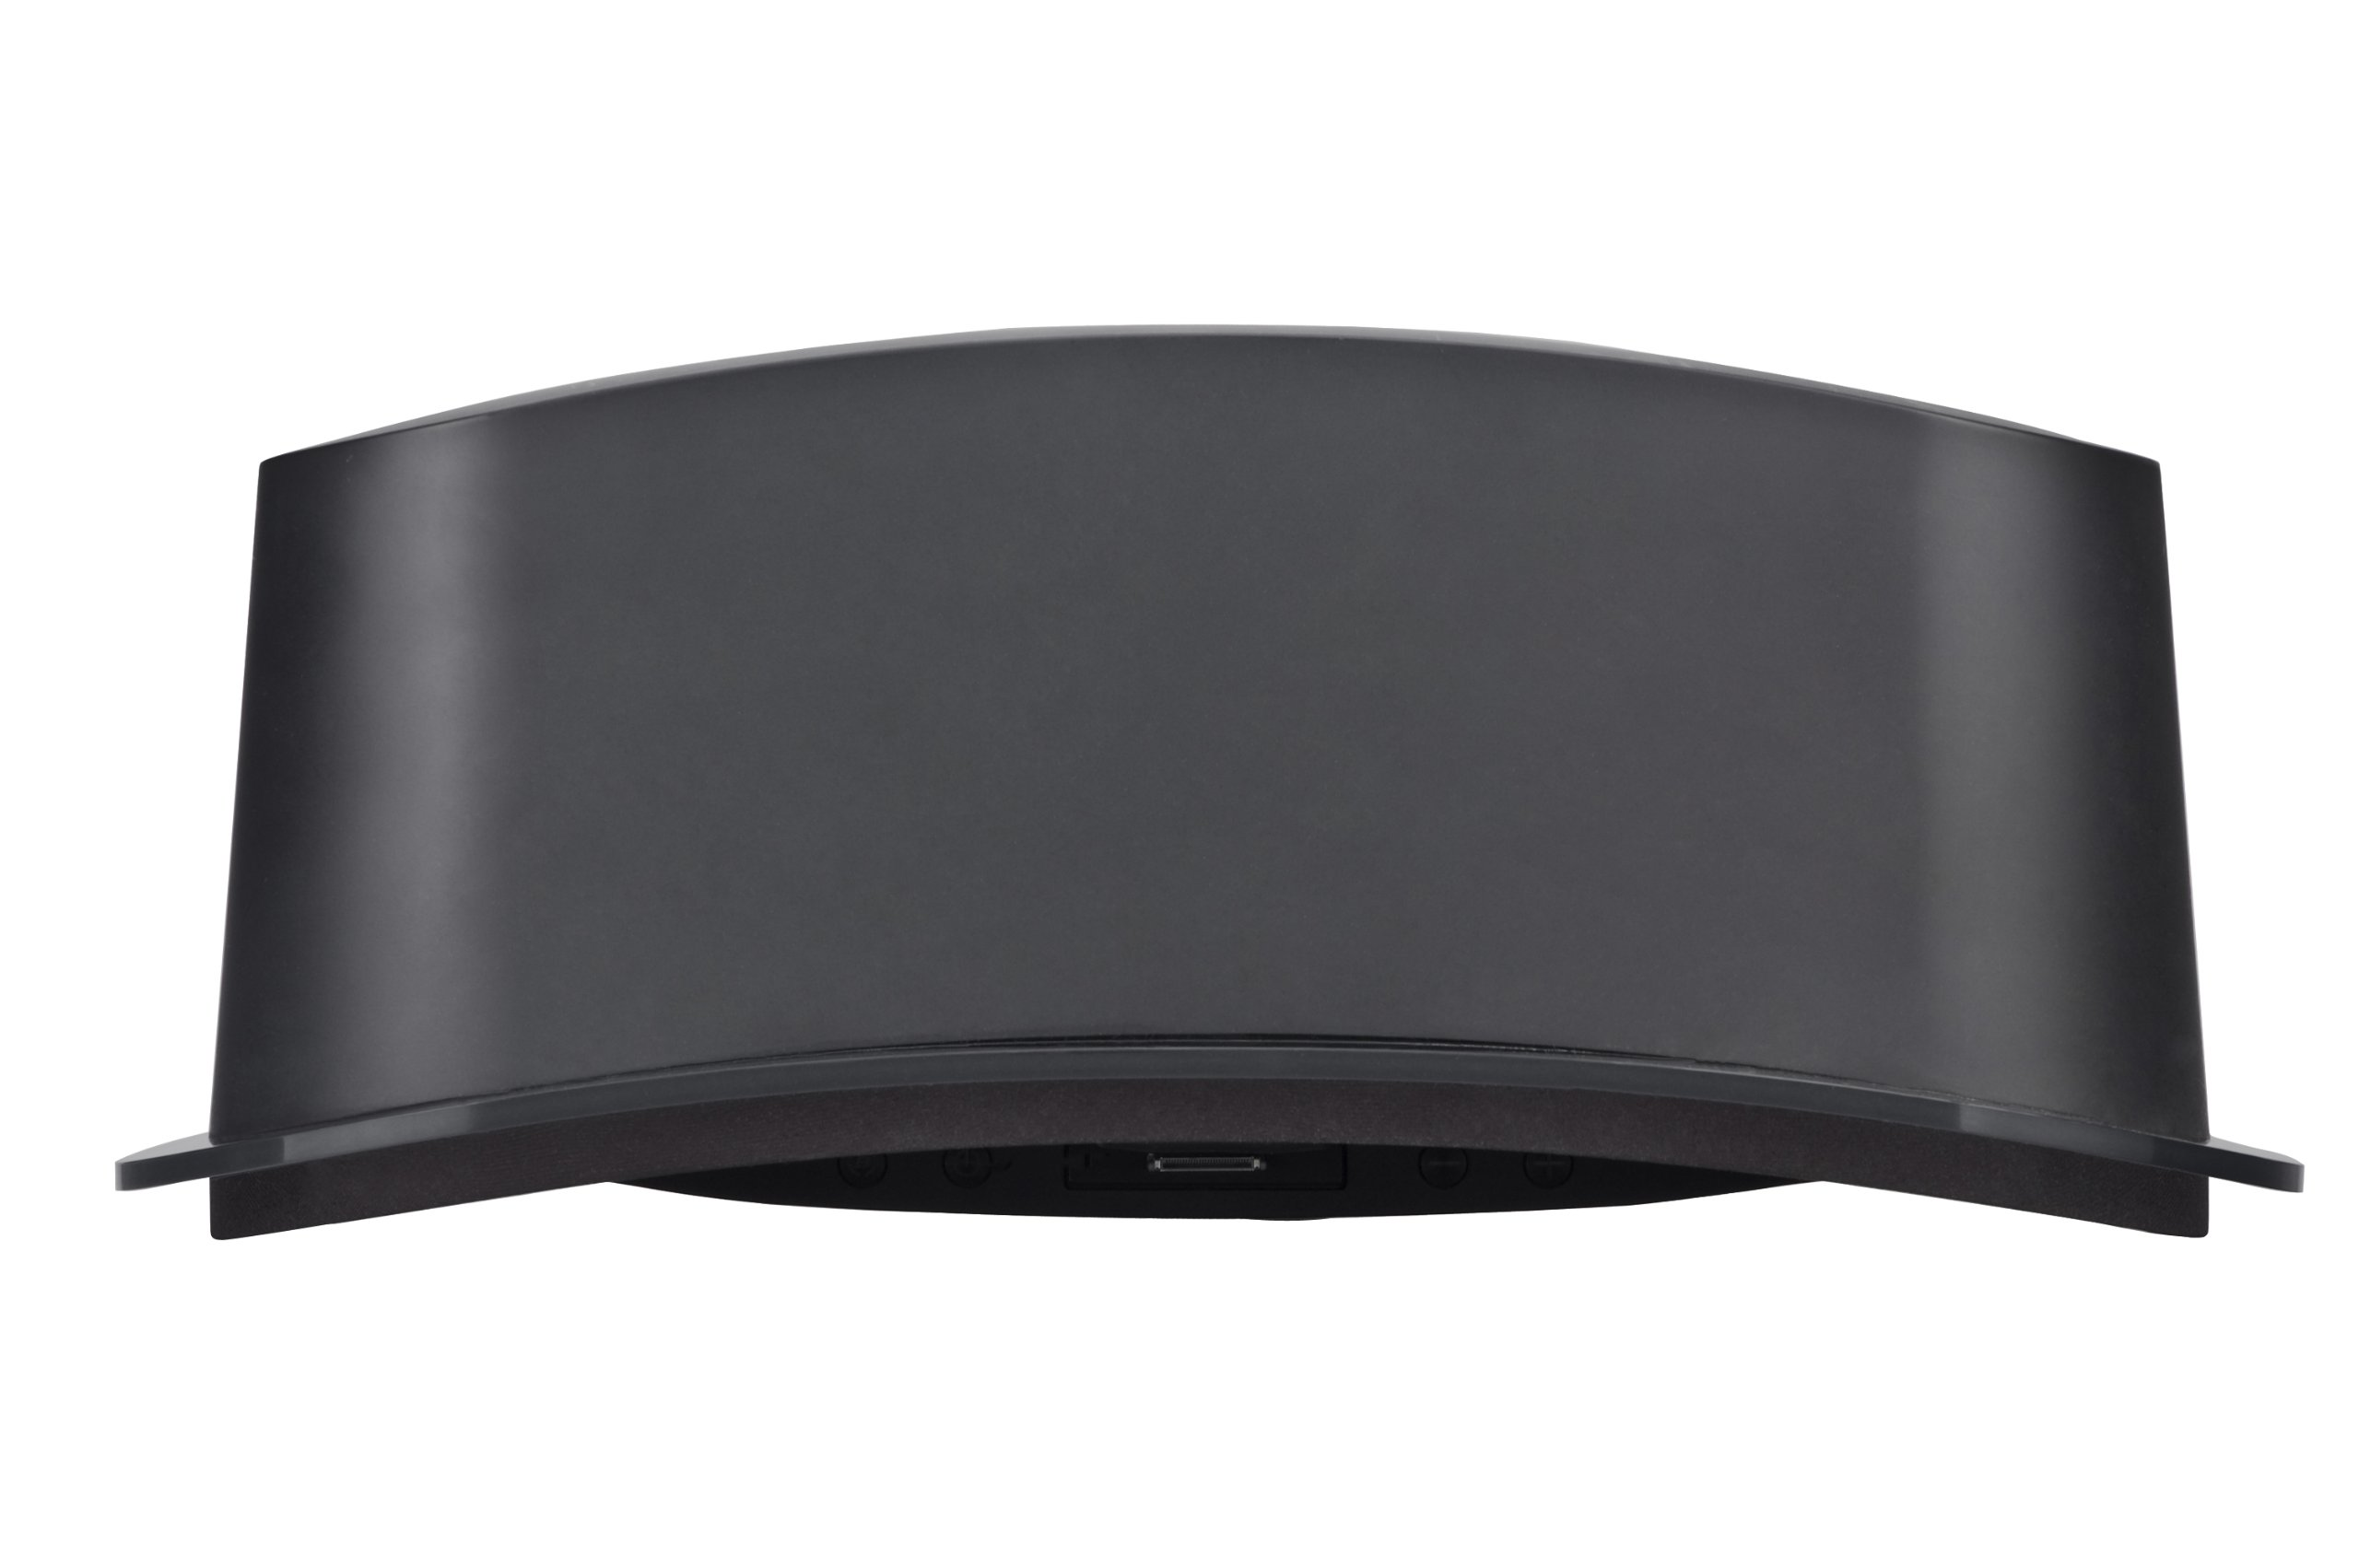 iHome iP3 Studio Series Audio System for iPhone/iPod by Sound Design (Image #6)